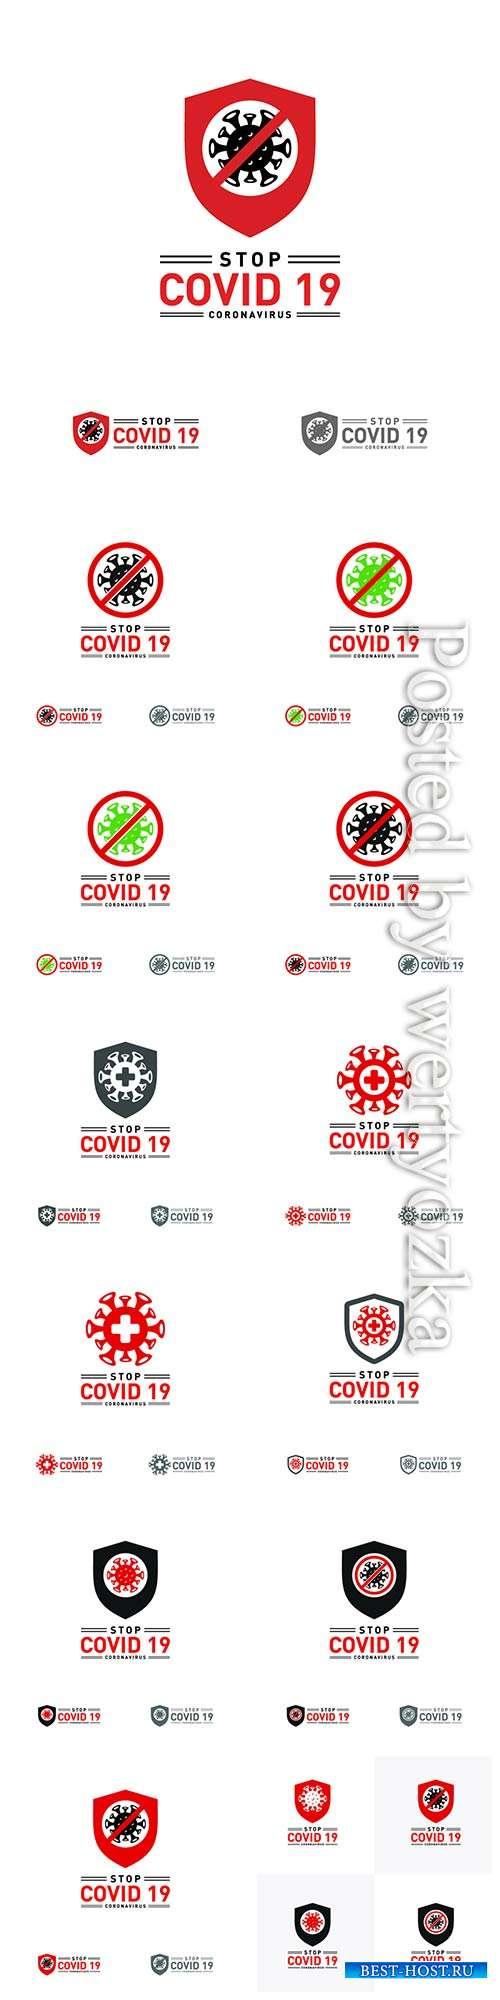 COVID 19, Coranavirus vector illustration sets # 23